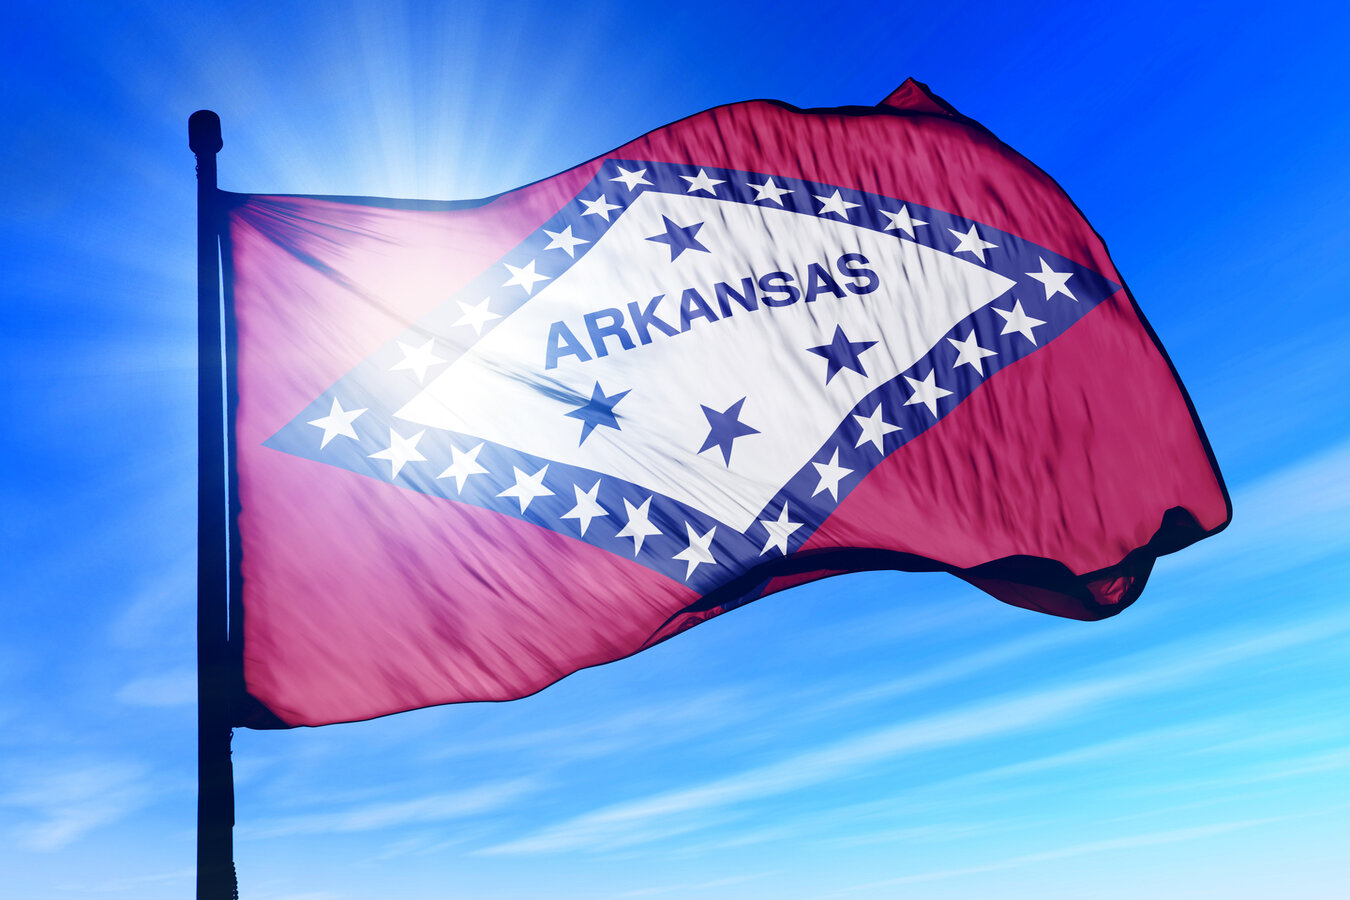 A flag of Arkansas waiving in the air, blue sky in the background